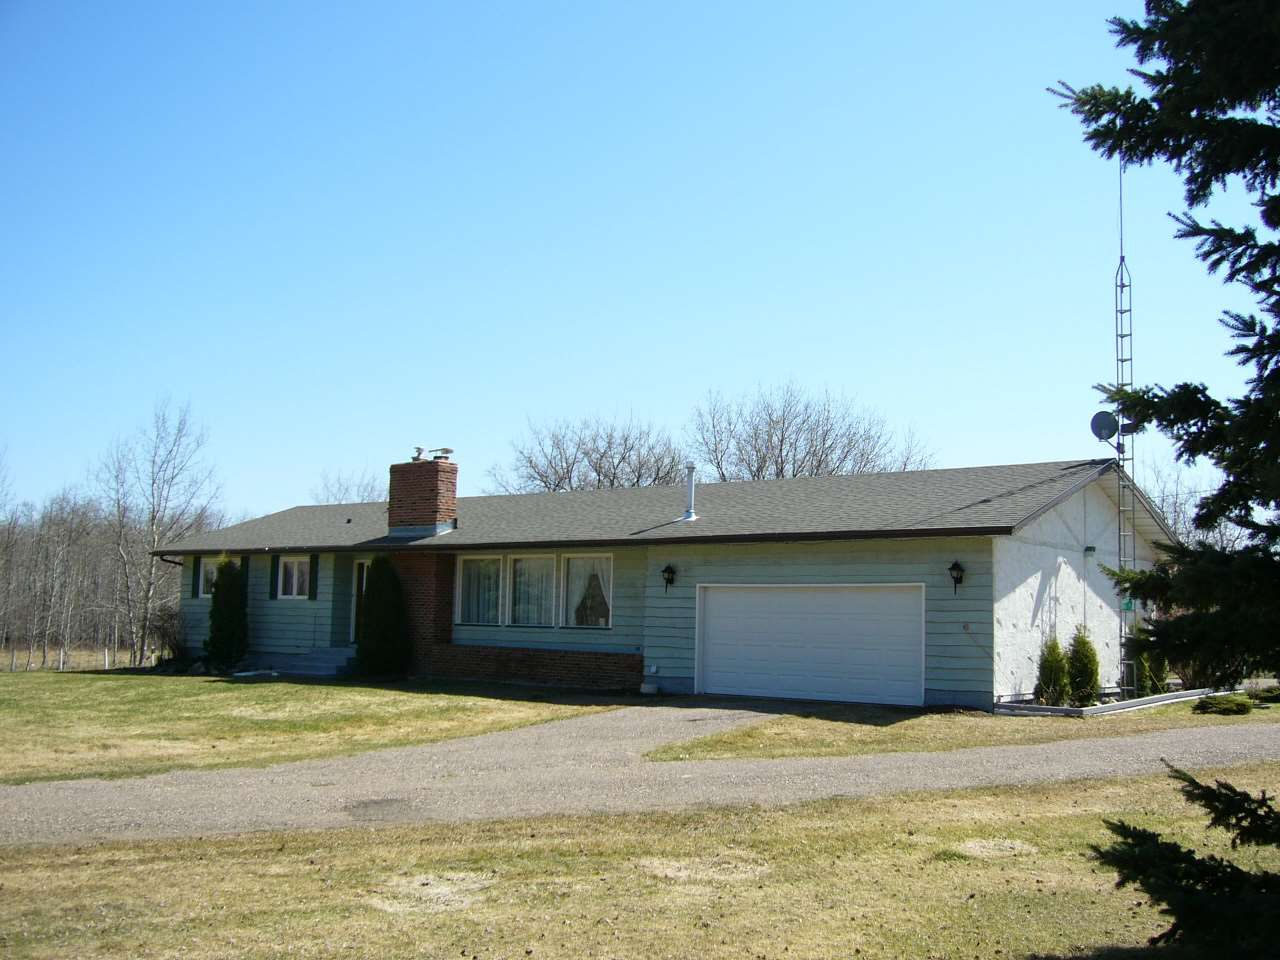 Main Photo: 7121 Twp Rd 574: Rural St. Paul County House for sale : MLS®# E4105085